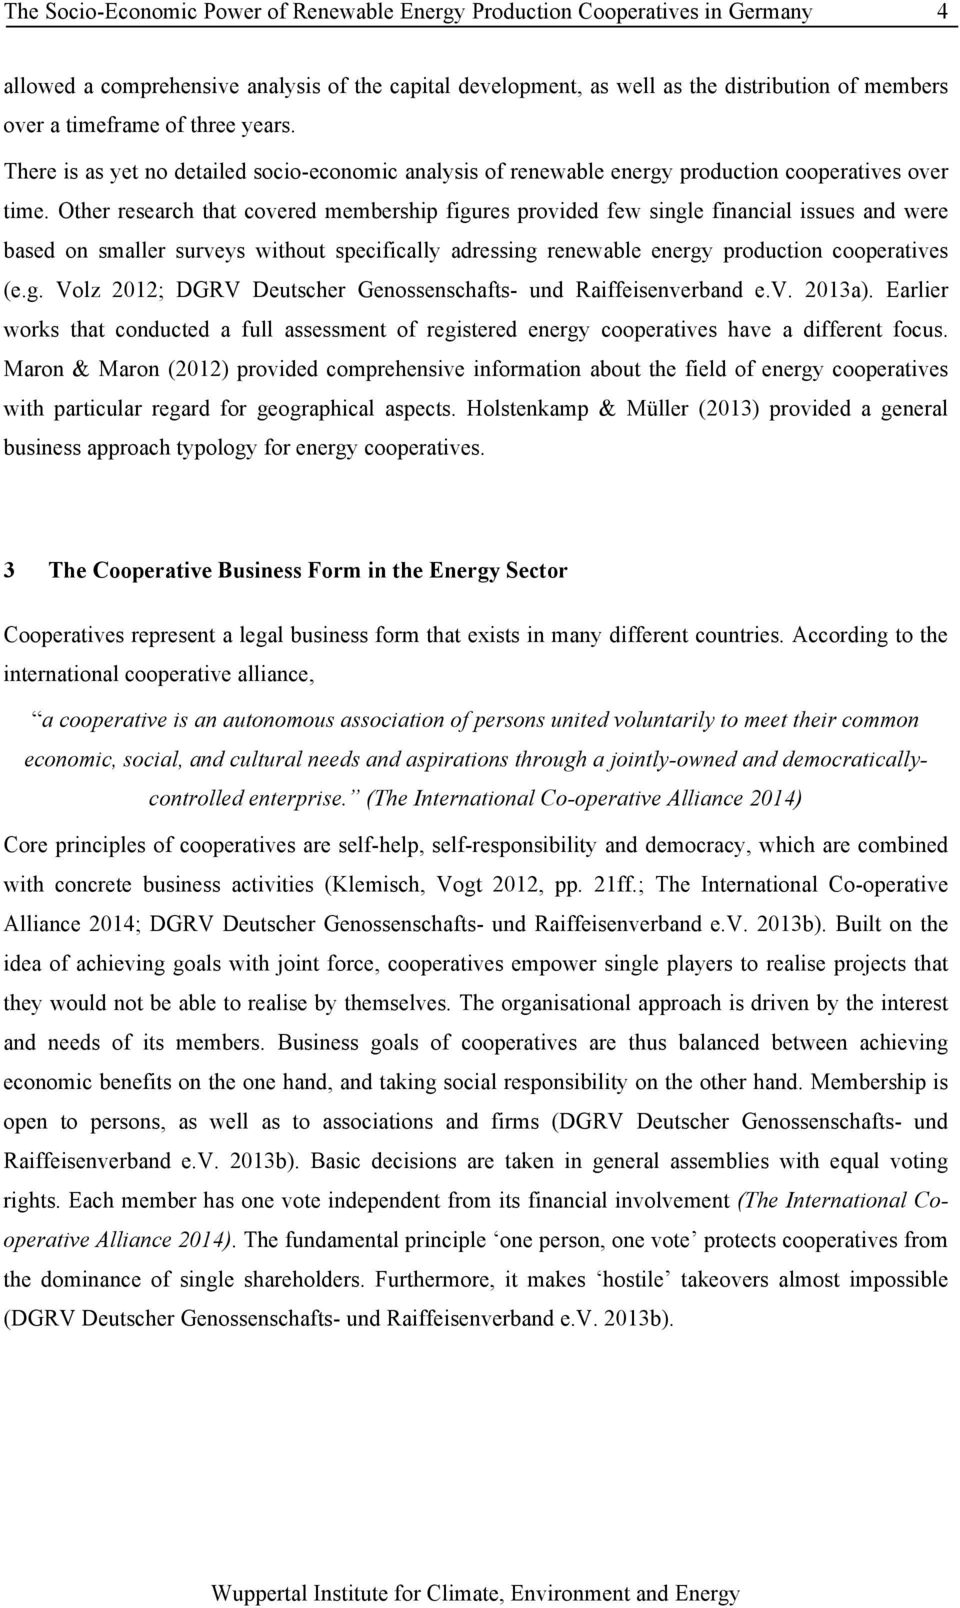 Other research that covered membership figures provided few single financial issues and were based on smaller surveys without specifically adressing renewable energy production cooperatives (e.g. Volz 2012; DGRV Deutscher Genossenschafts- und Raiffeisenverband e.